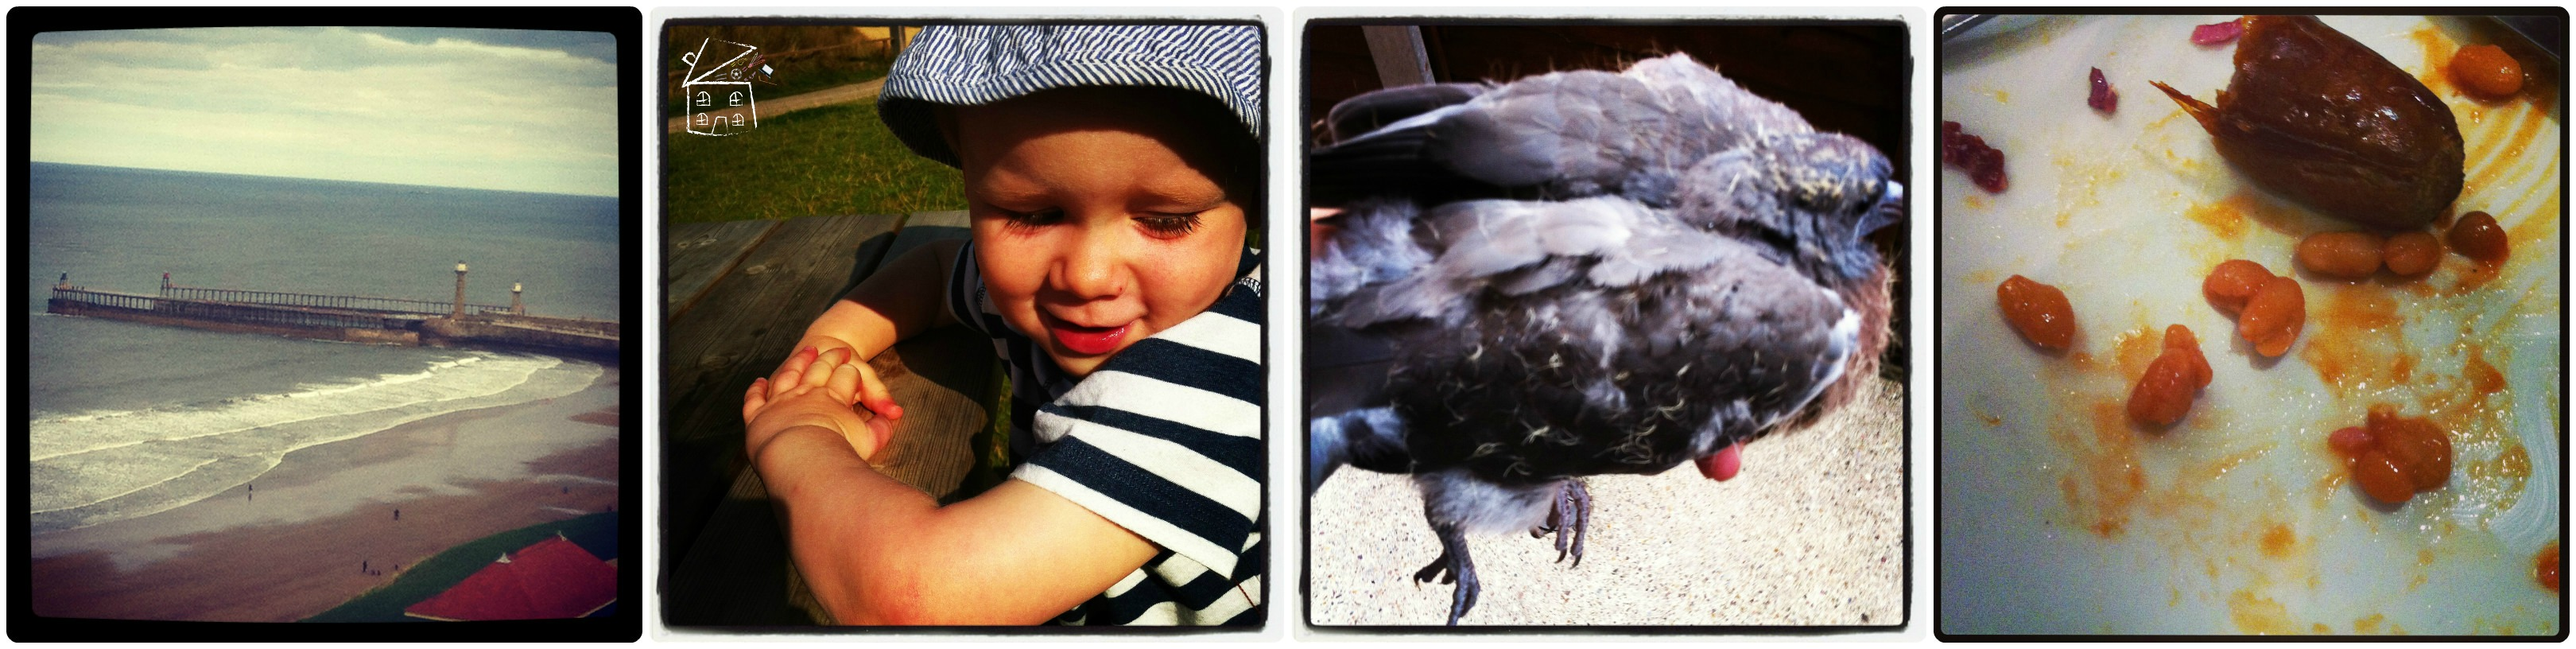 Whitby Harbour, Small Child, Baby Wood Pigeon, Cooked Breakfast